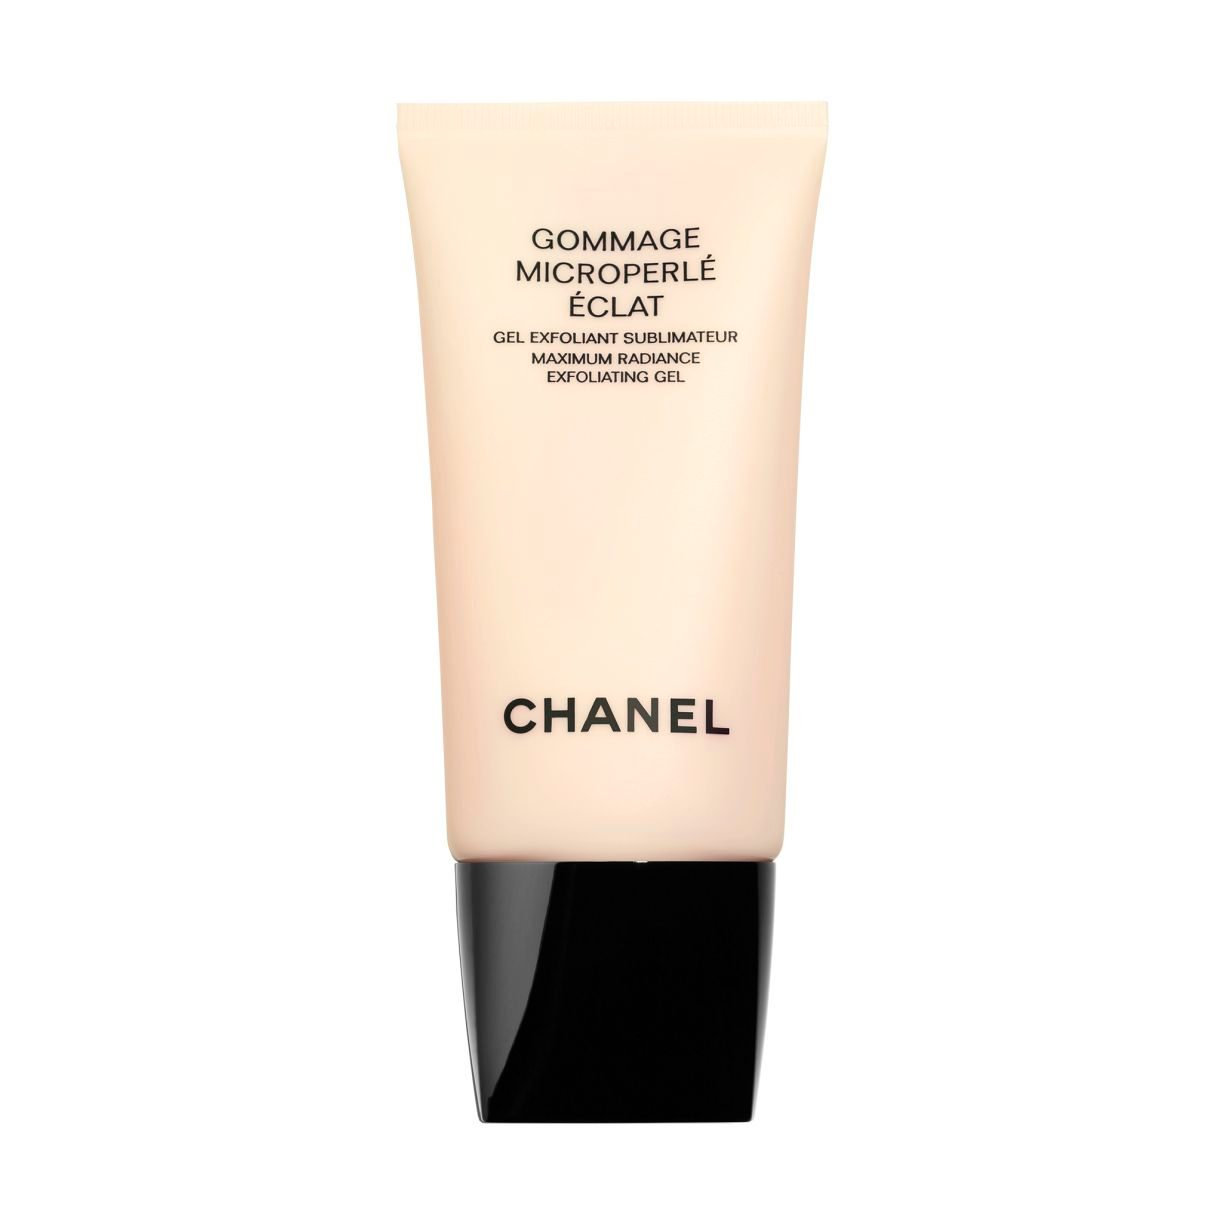 GOMMAGE MICROPERLÉ ÉCLAT MAXIMUM RADIANCE EXFOLIATING GEL